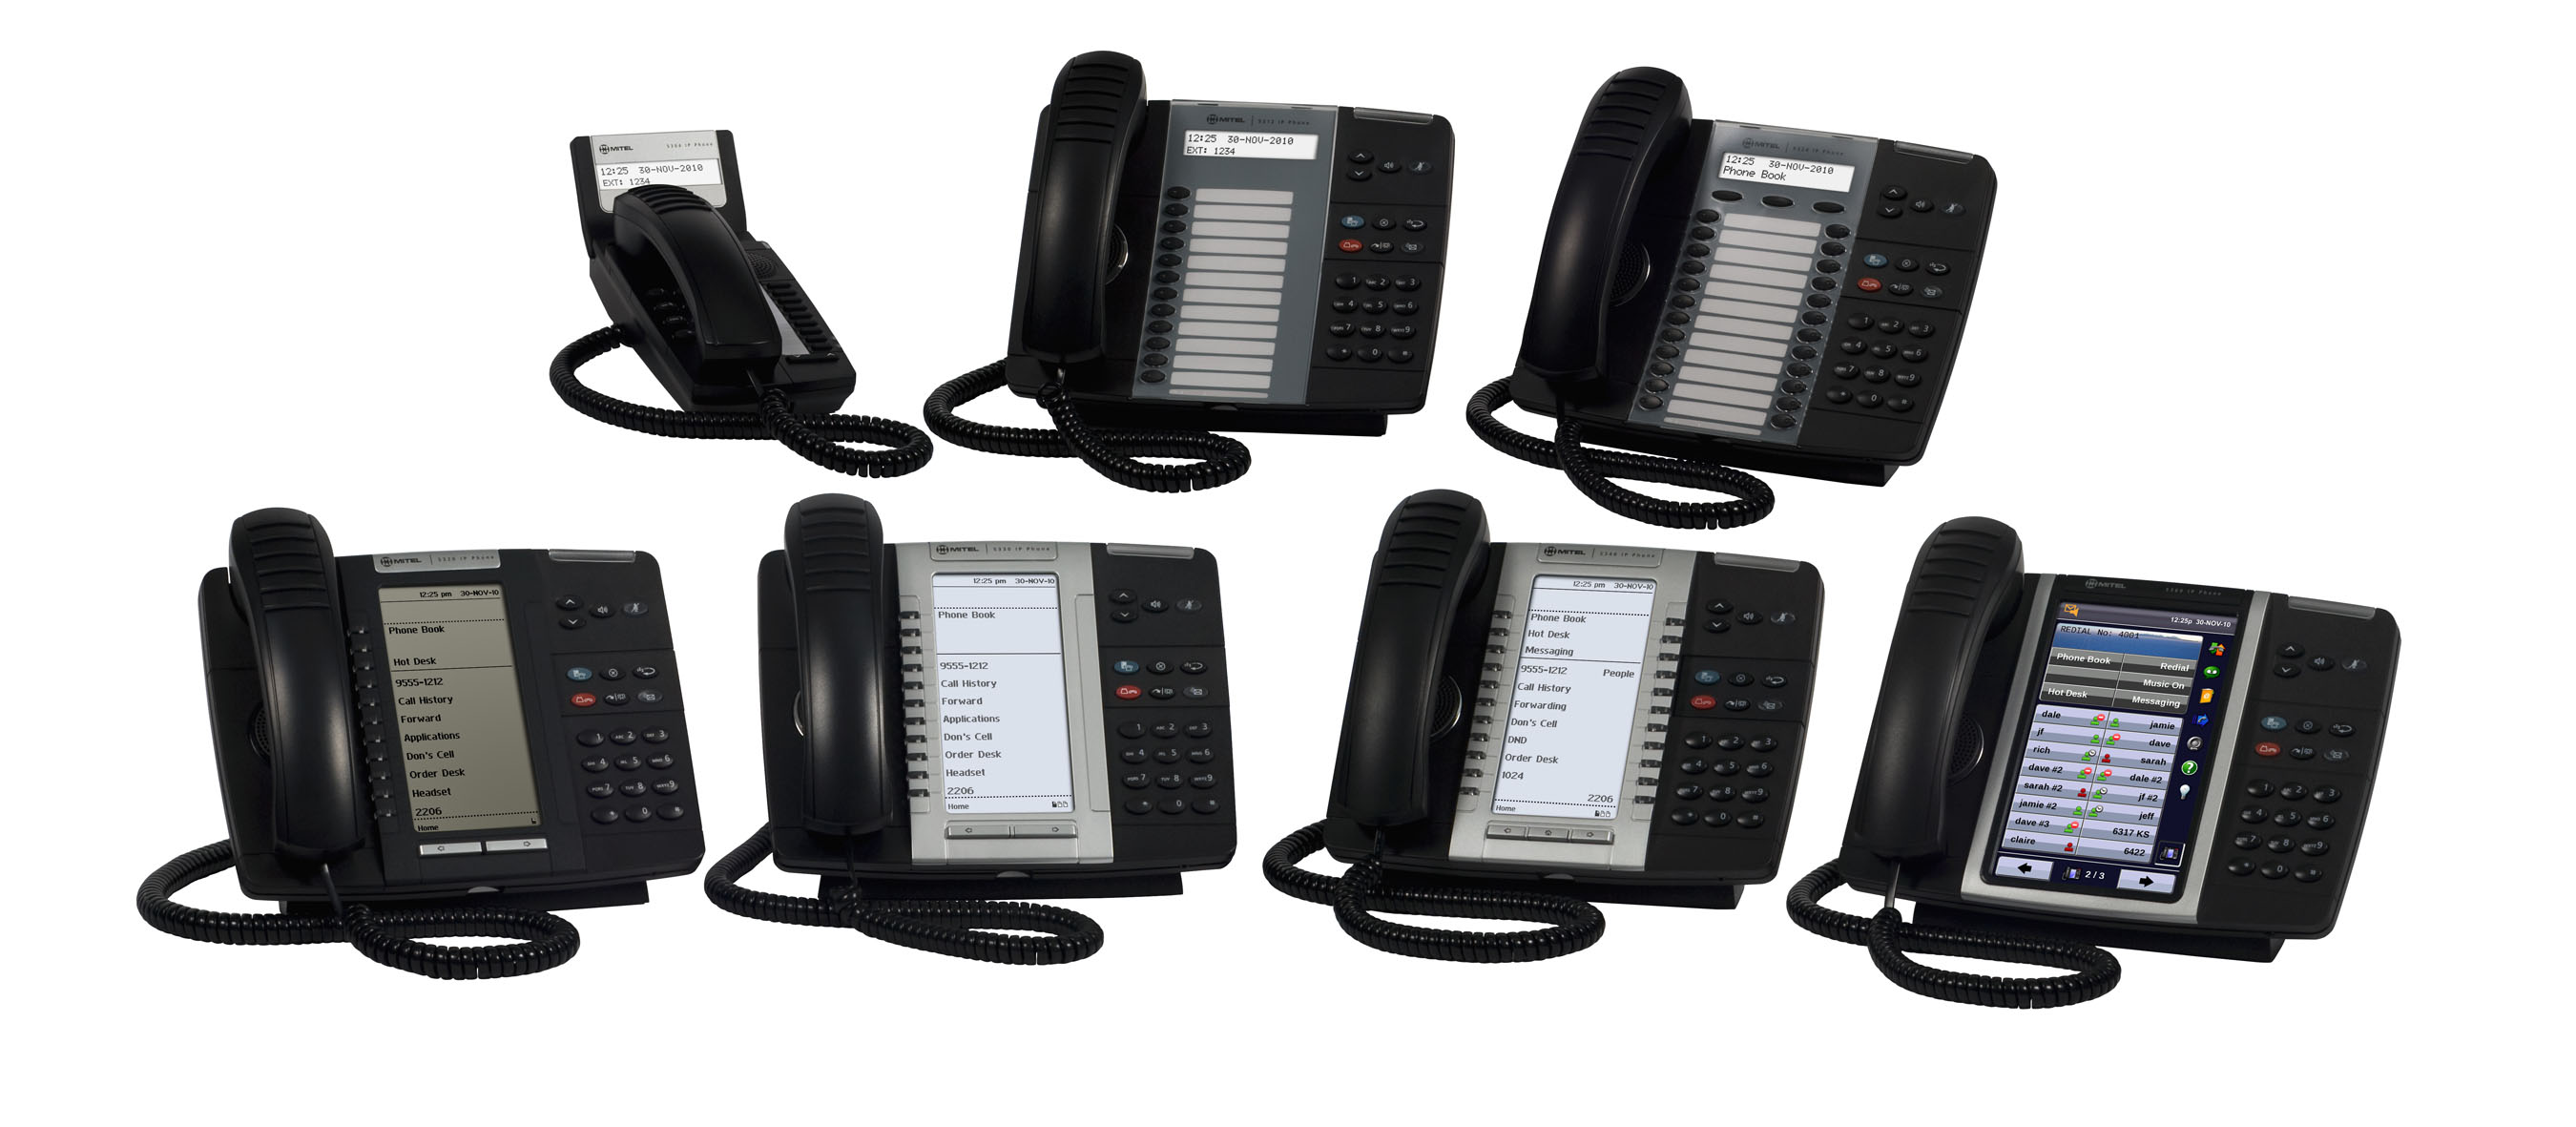 Mitel Phone Systems Integrated Communication Solutions NY Deer Park NY